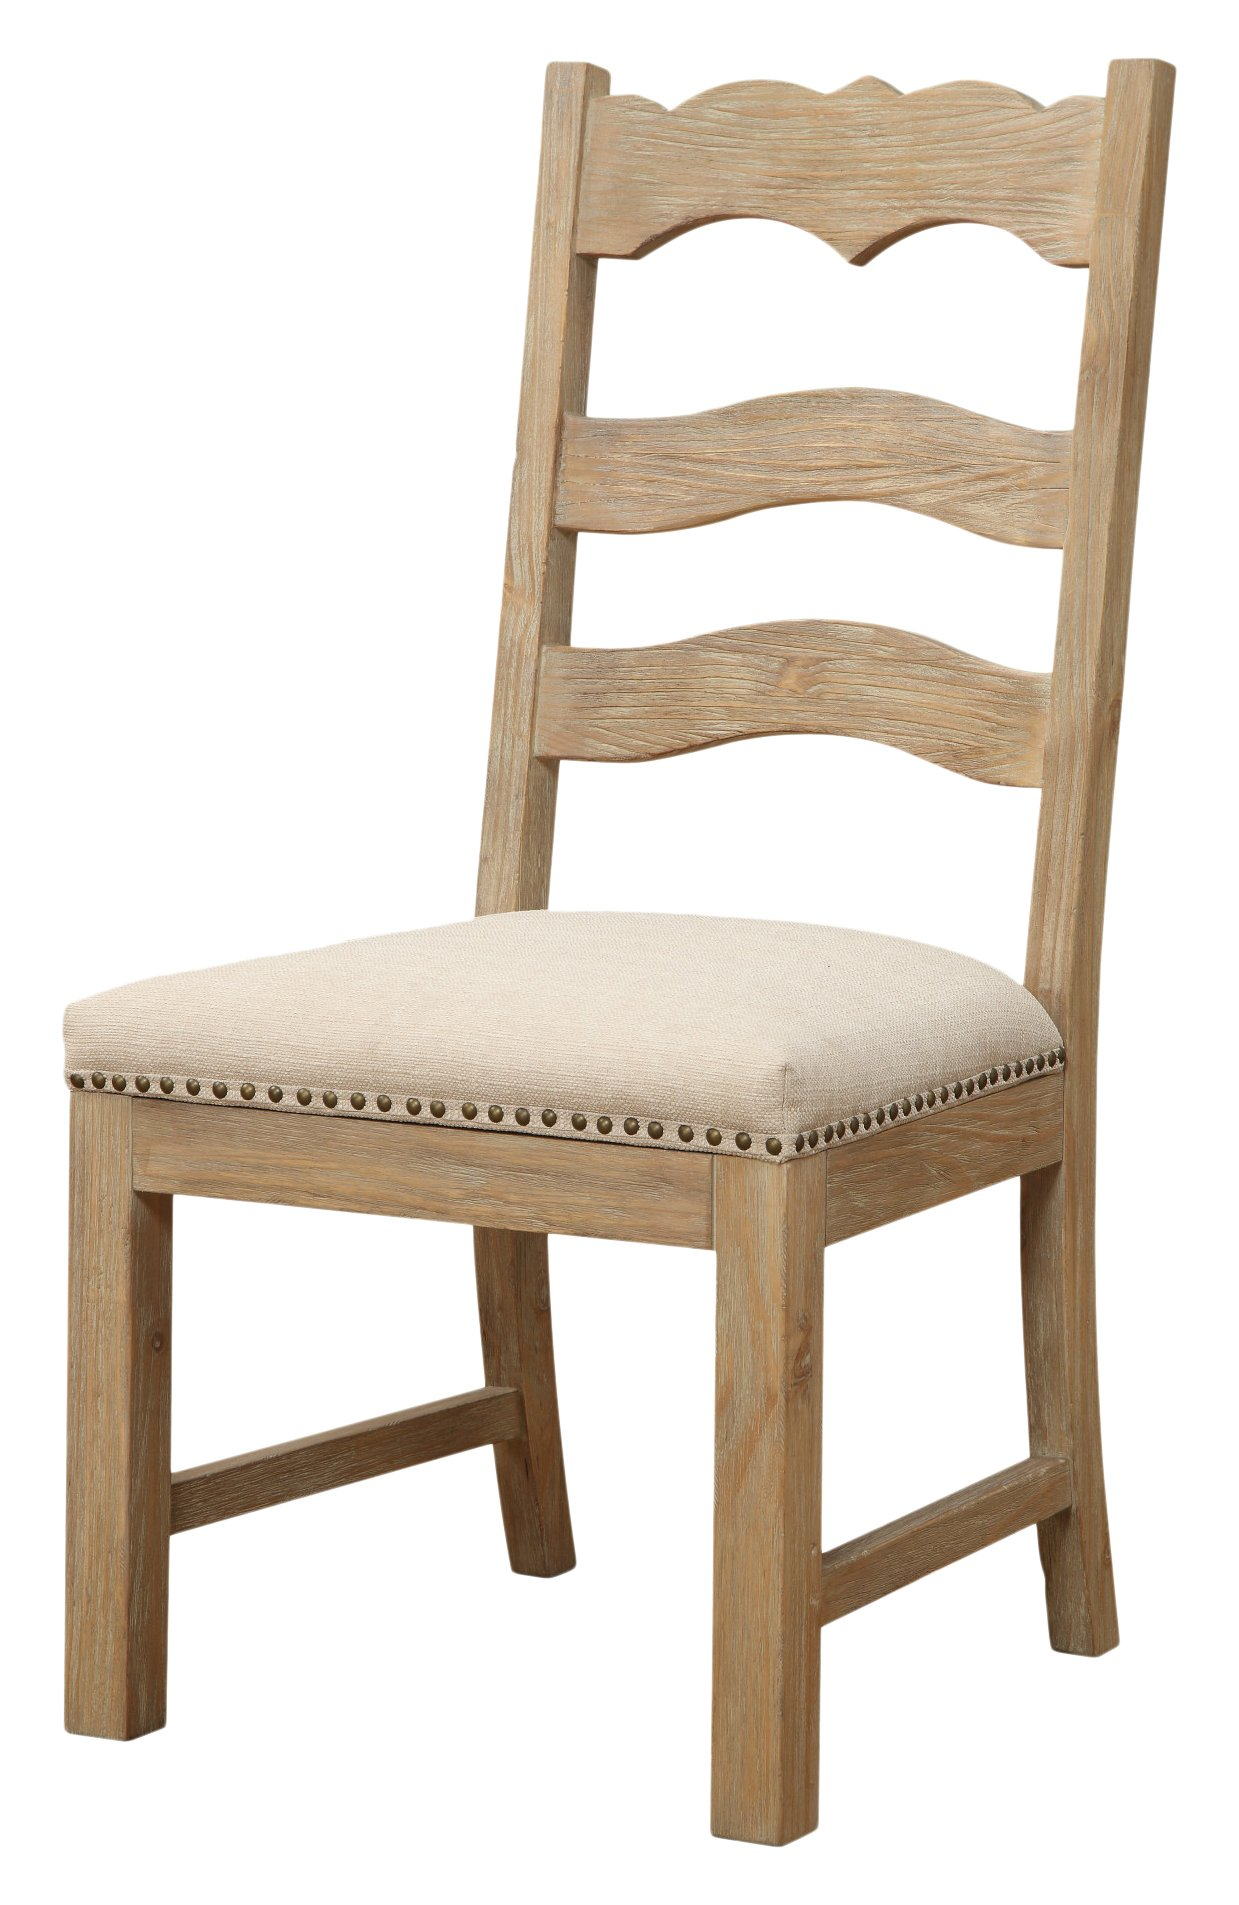 Emerald Home Barcelona Rustic Pine and Beige Dining Chair with Upholstered Seat, Ladder Back, And Nailhead Trim, Set of Two